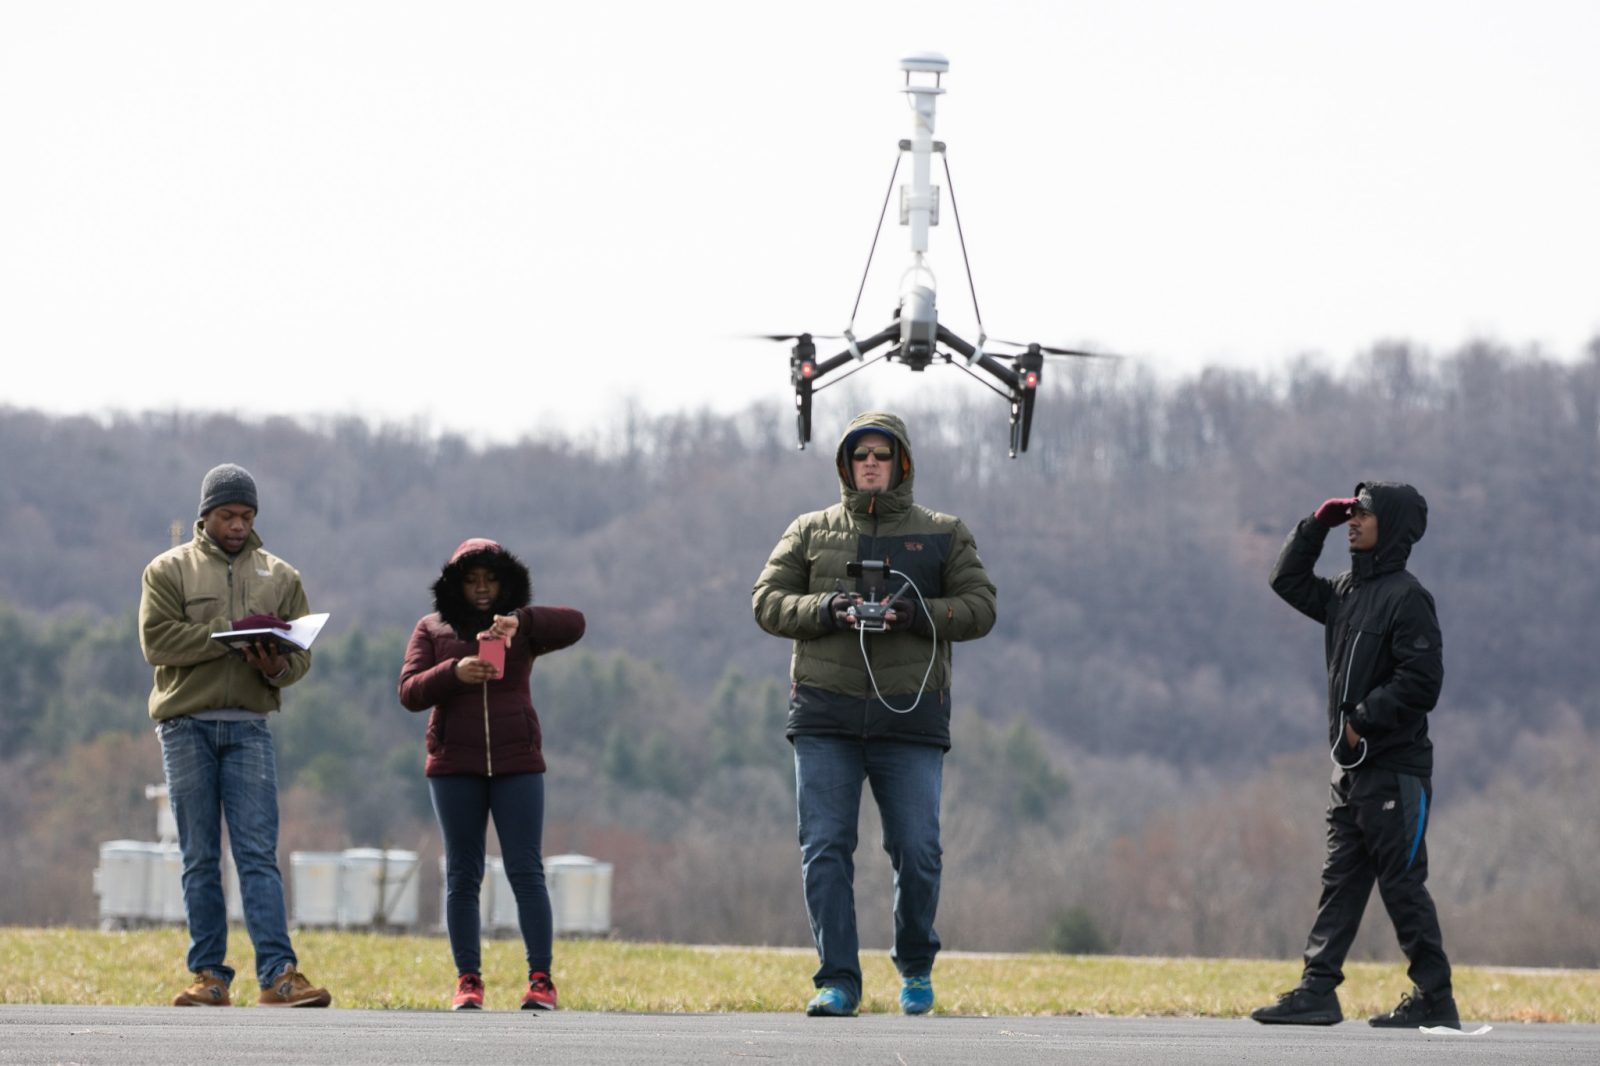 Undergraduates from Bennett, Morehouse, and Hampden Sydney stand on an airstrip at Virginia Tech's Kentland Farm. David Schmale is manning a drone. One student is writing in a notebook, another is recording a video on her phone, and another is observing the drone and protecting his eyes with his hands. Courtesy of Peter Means.